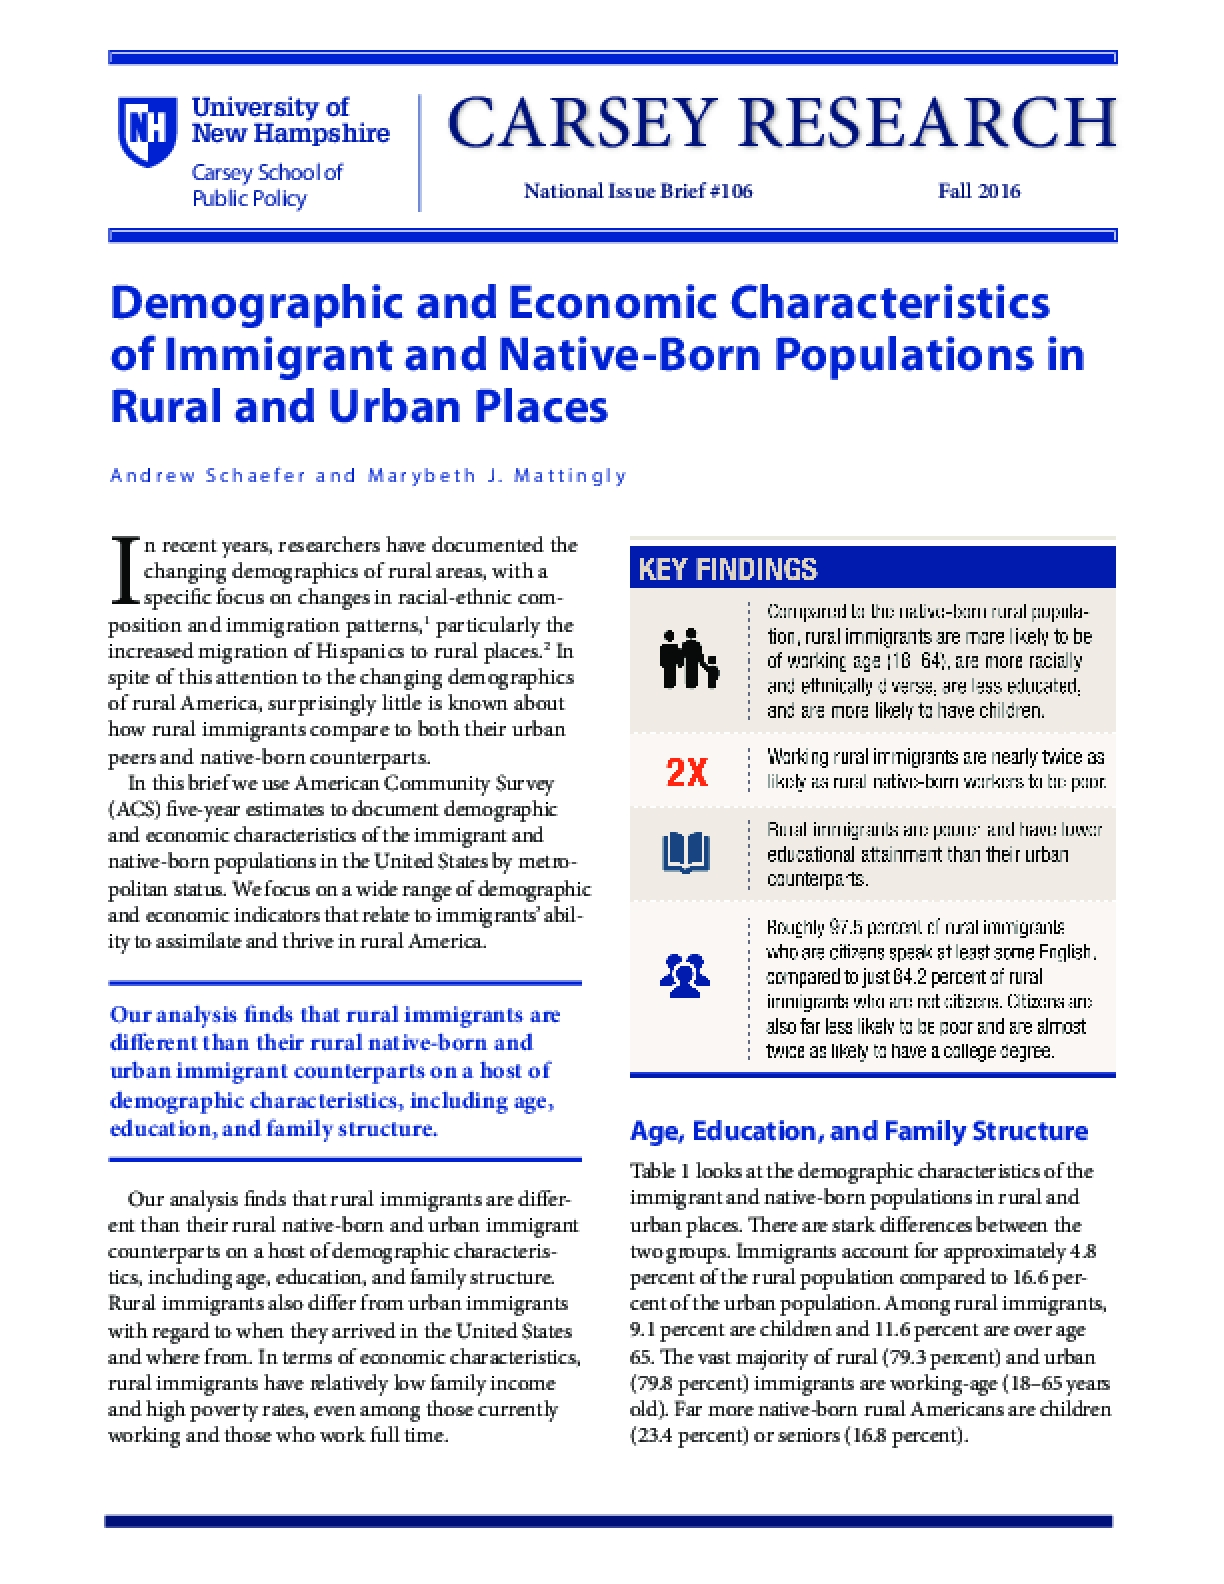 Demographic and Economic Characteristics of Immigrant and Native-Born Populations in Rural and Urban Places